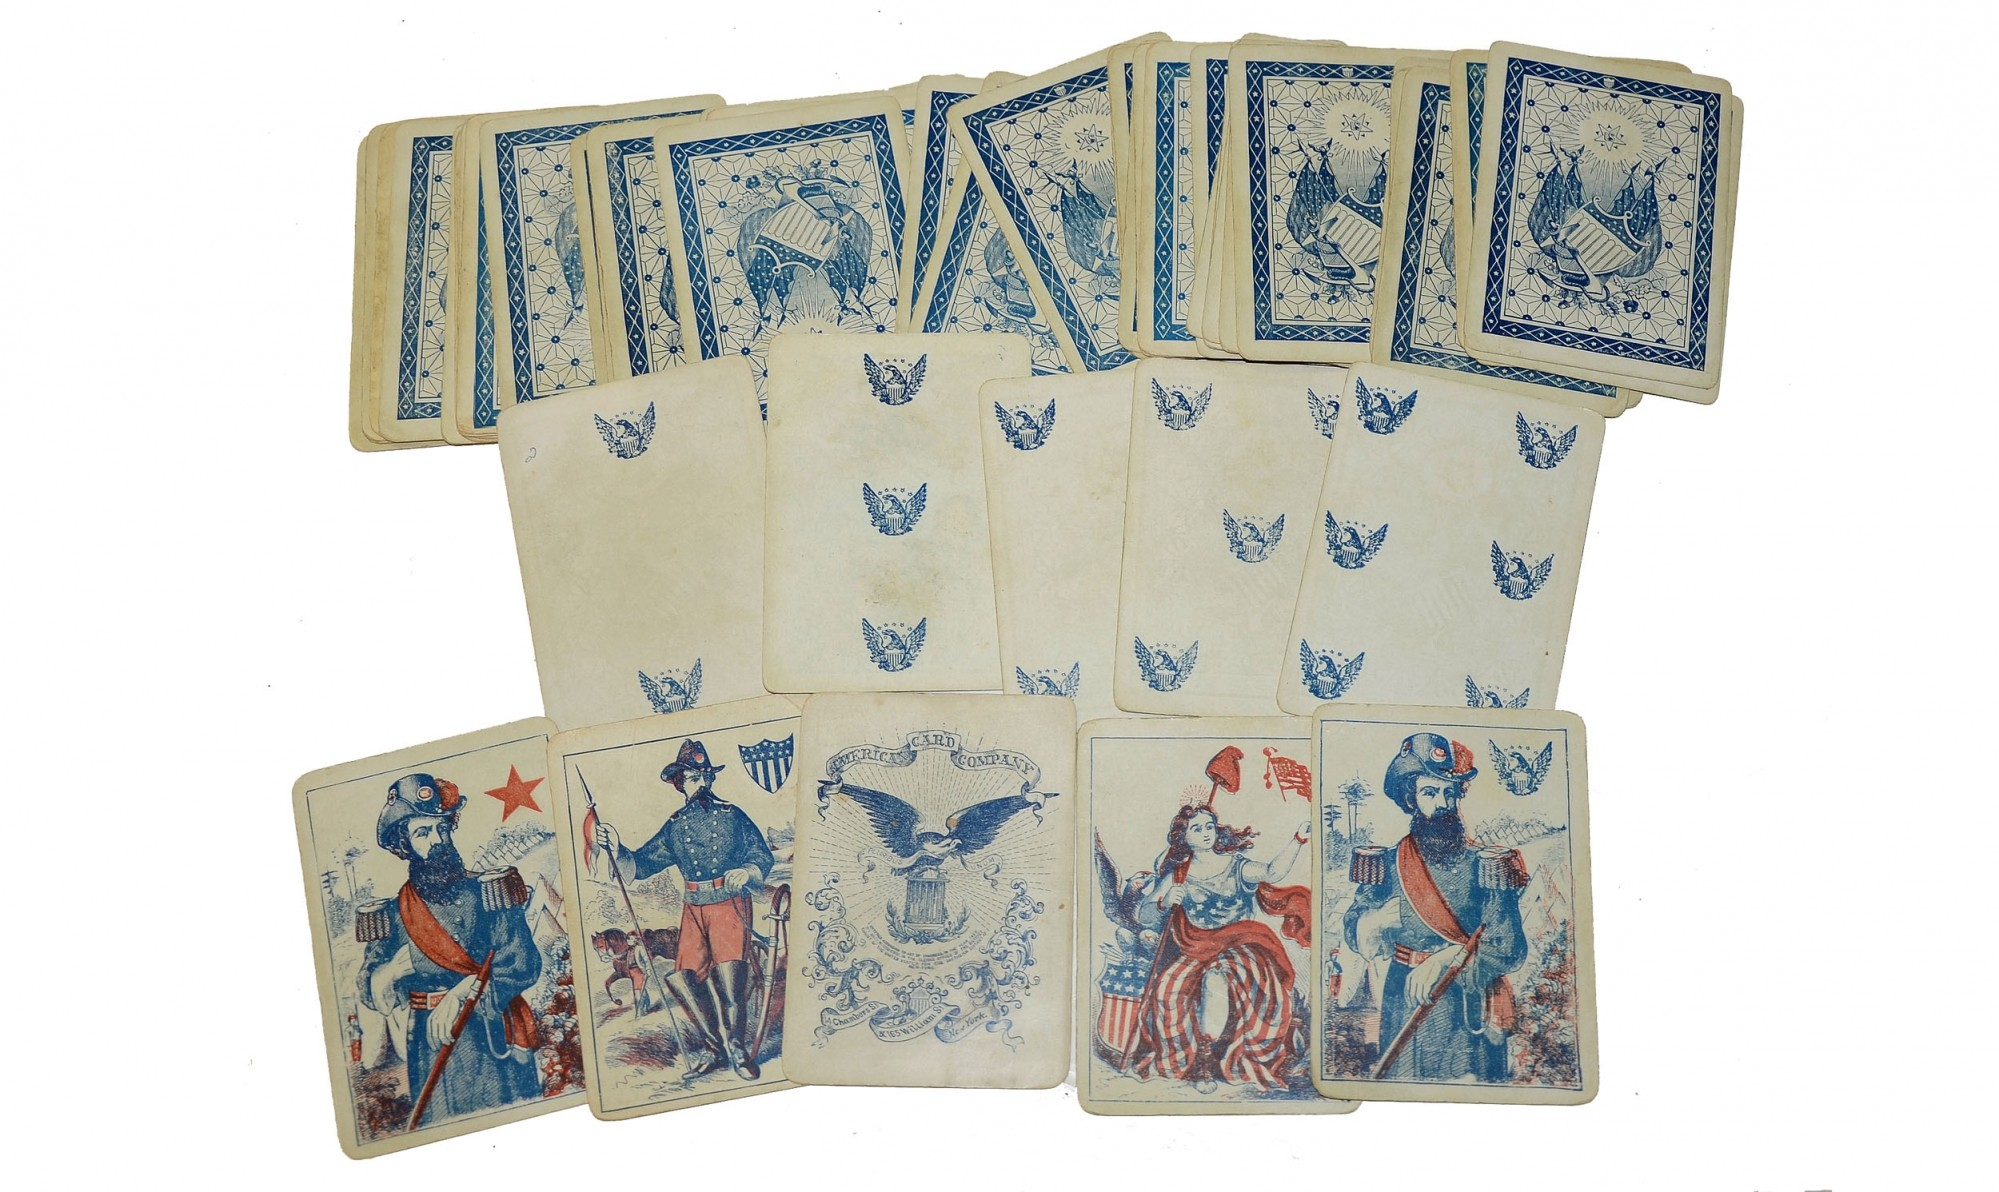 COMPLETE DECK OF CIVIL WAR PATRIOTIC PLAYING CARDS